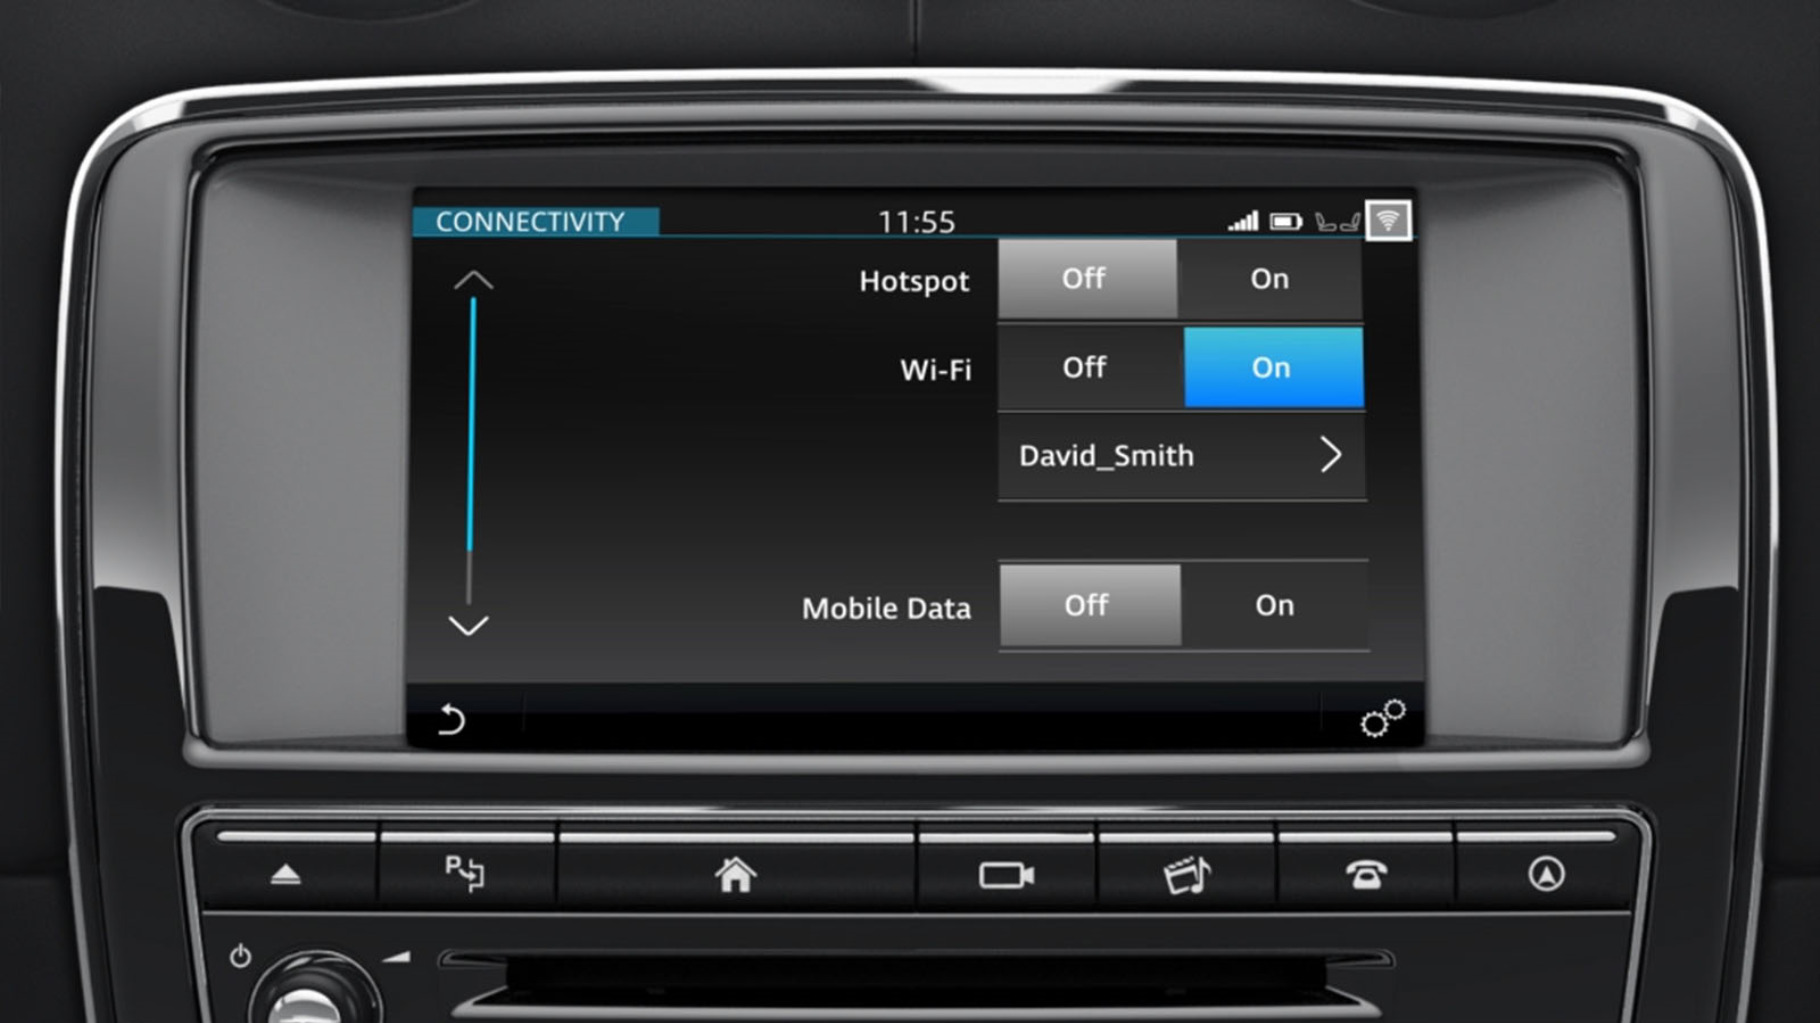 Jaguar XJ's InControl Touch Pro: Connectivity information video.